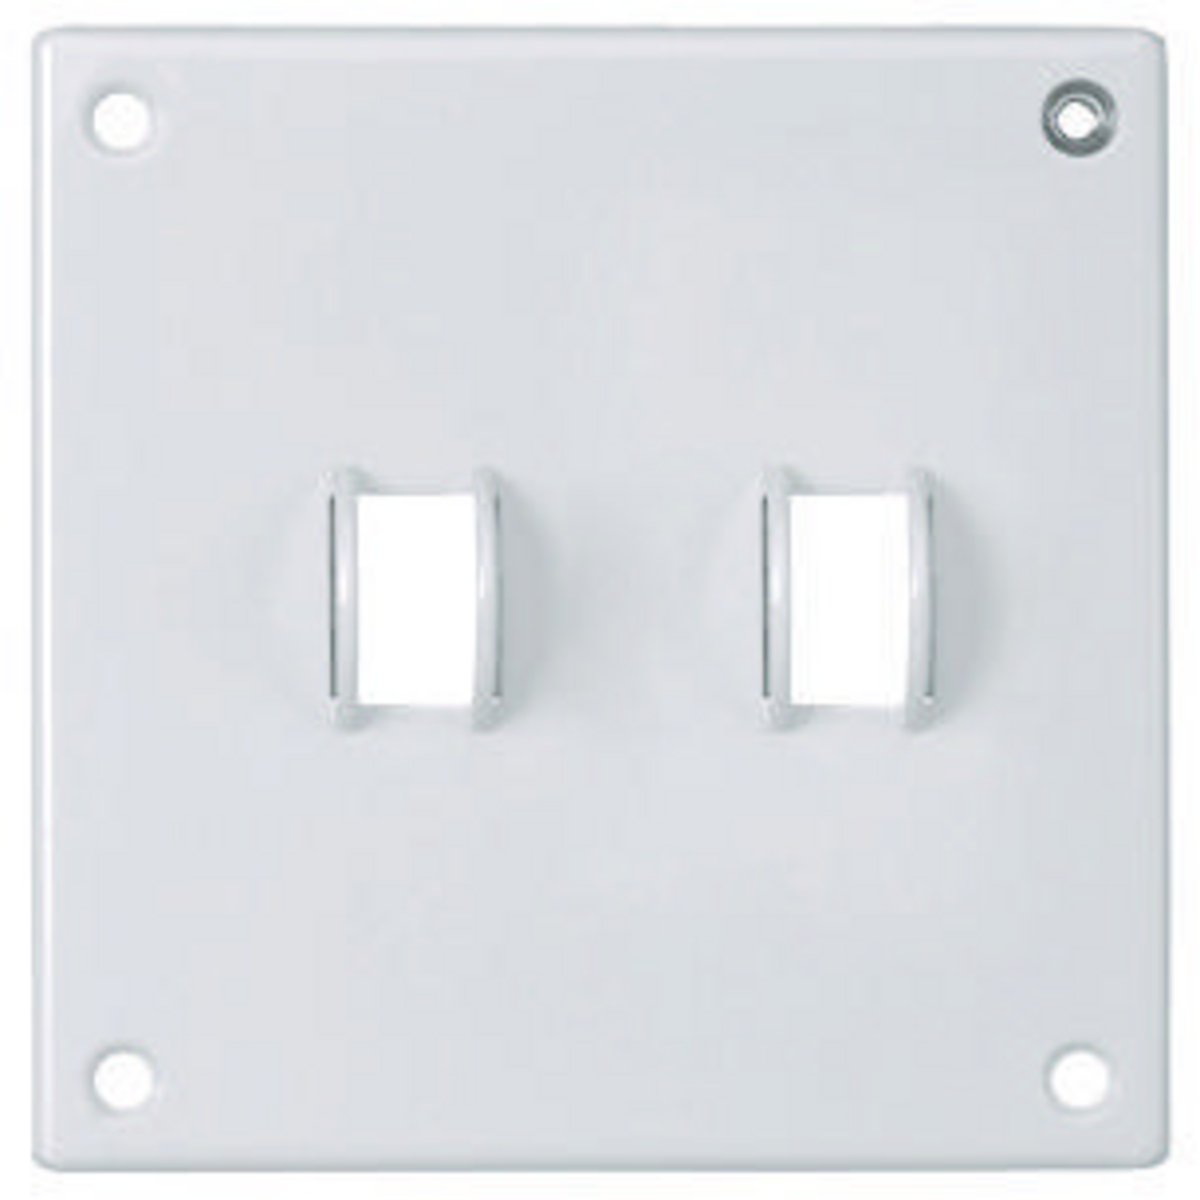 Hubbell SWP2 SEC WALLPLATE, 2-G, TOG, WH